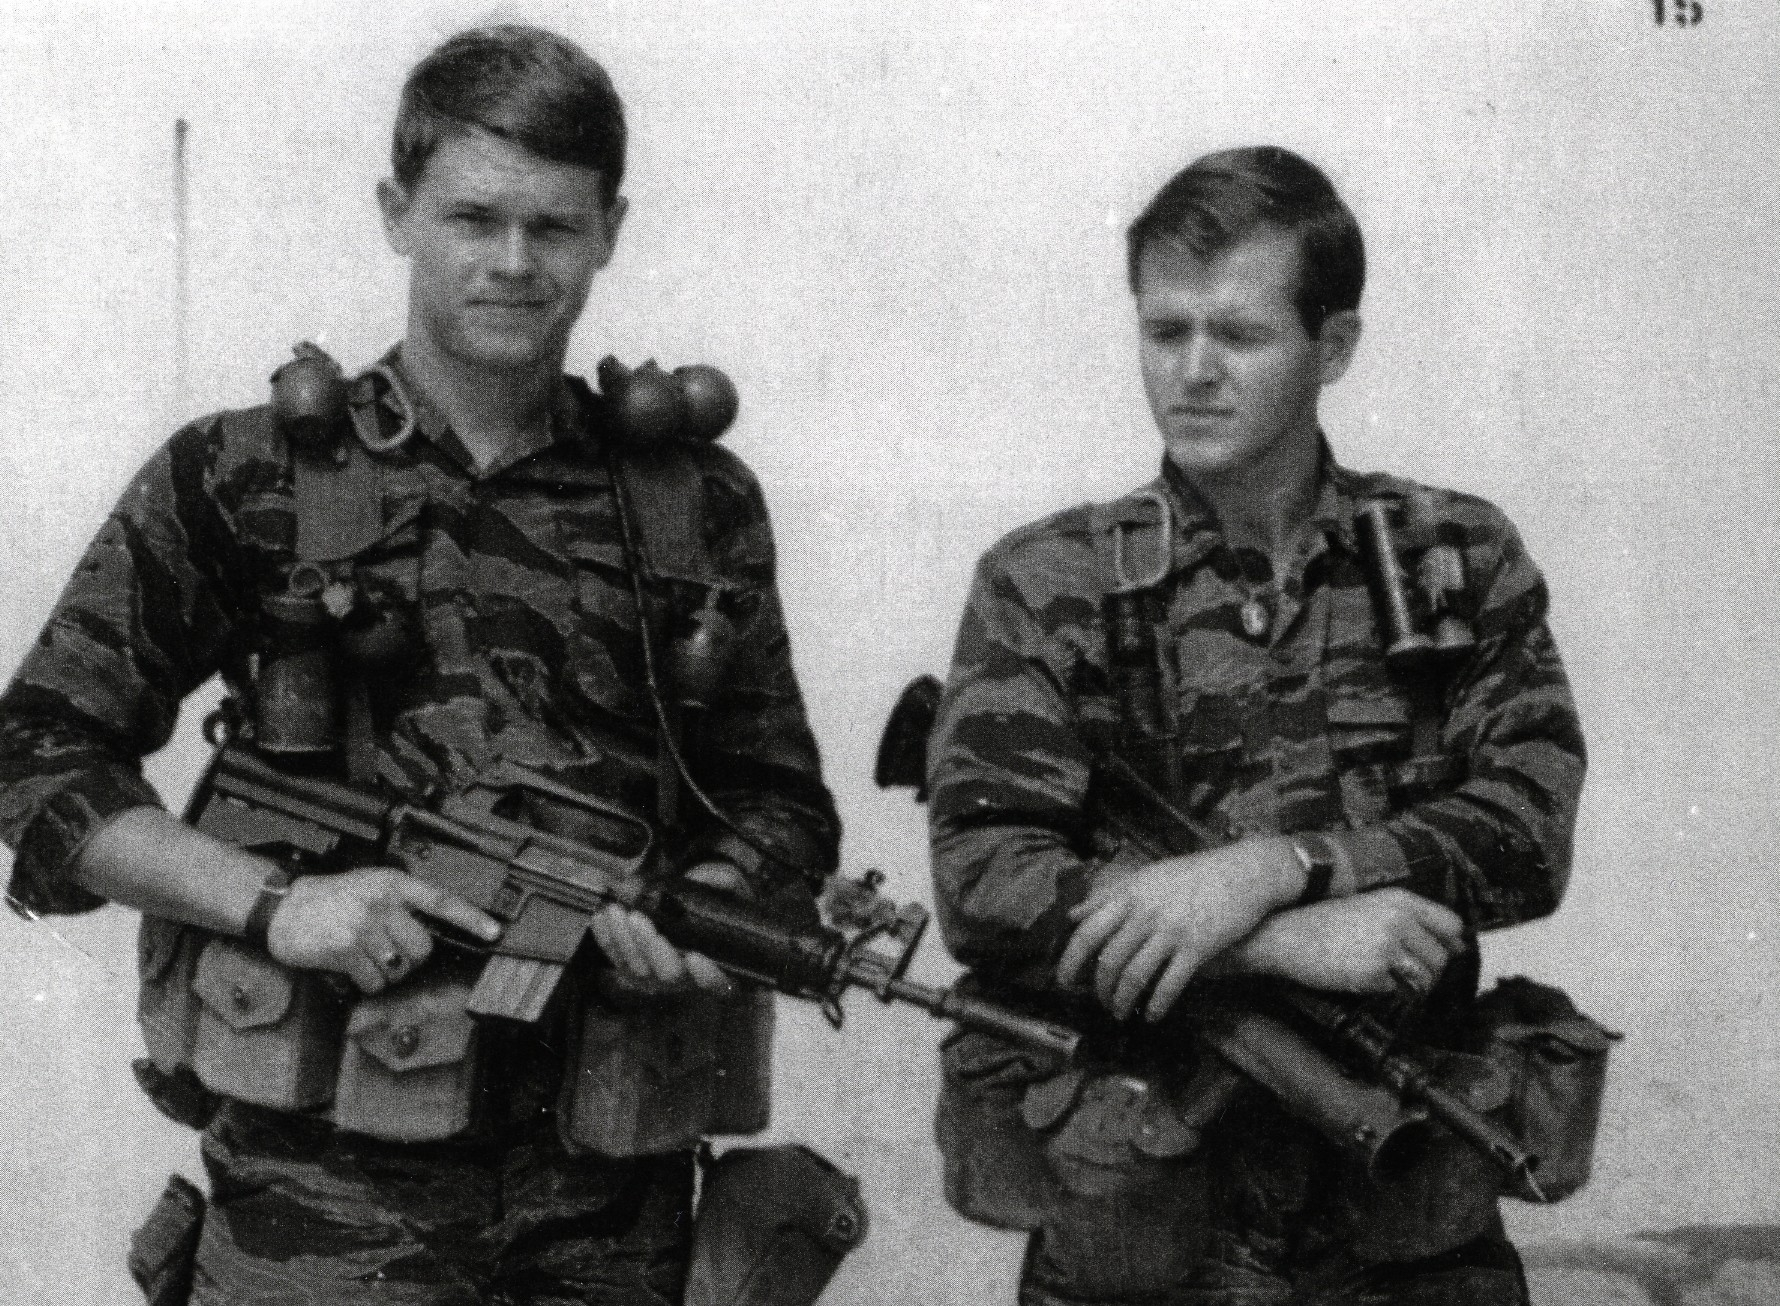 The Weapons And Gear Special Forces Recon Teams Carried In The Vietnam War Sofrep